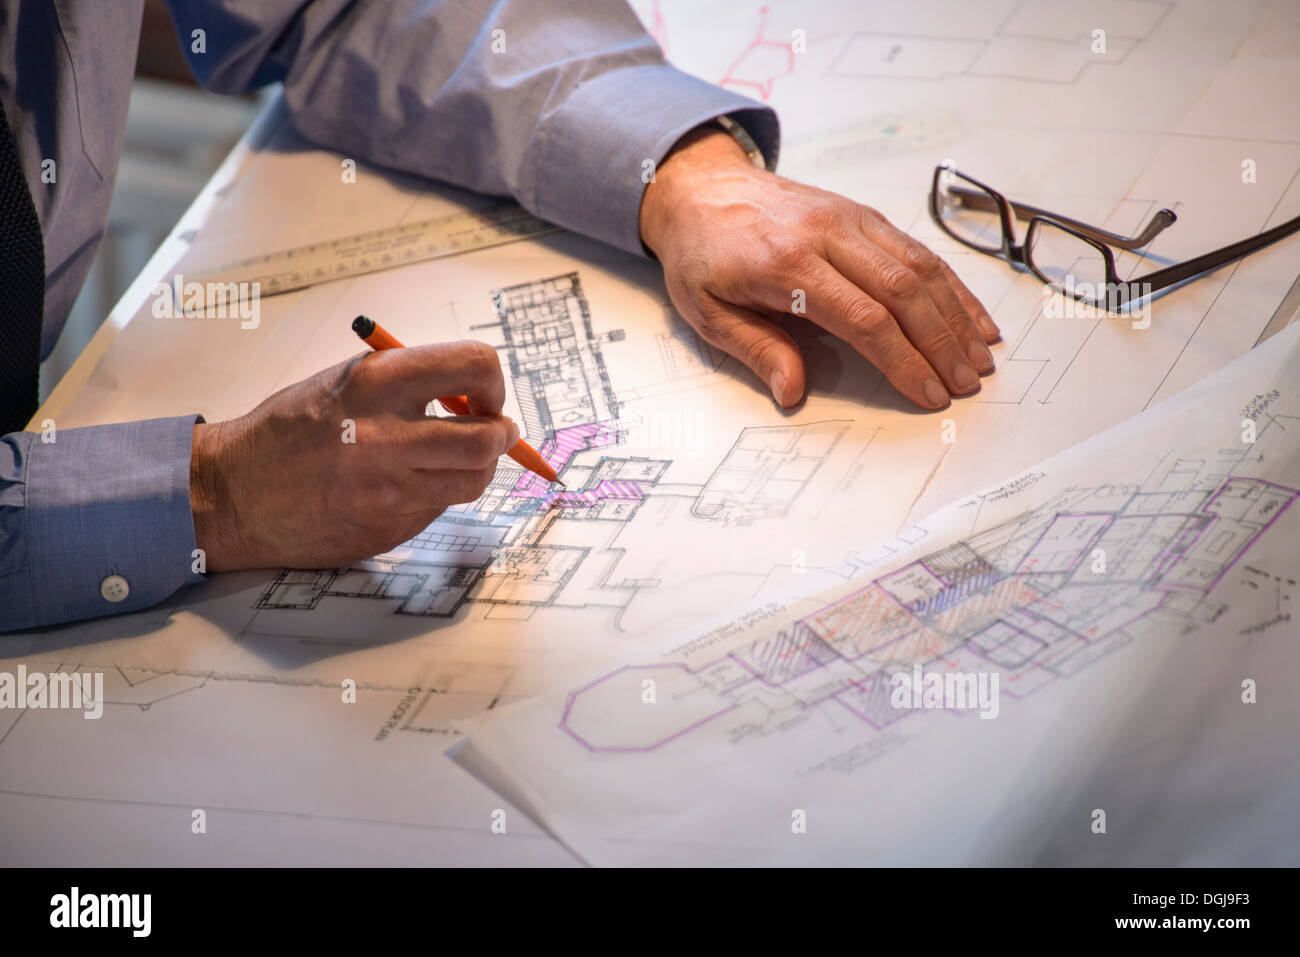 Architect drawing plans at drawing board, close up - Stock Image